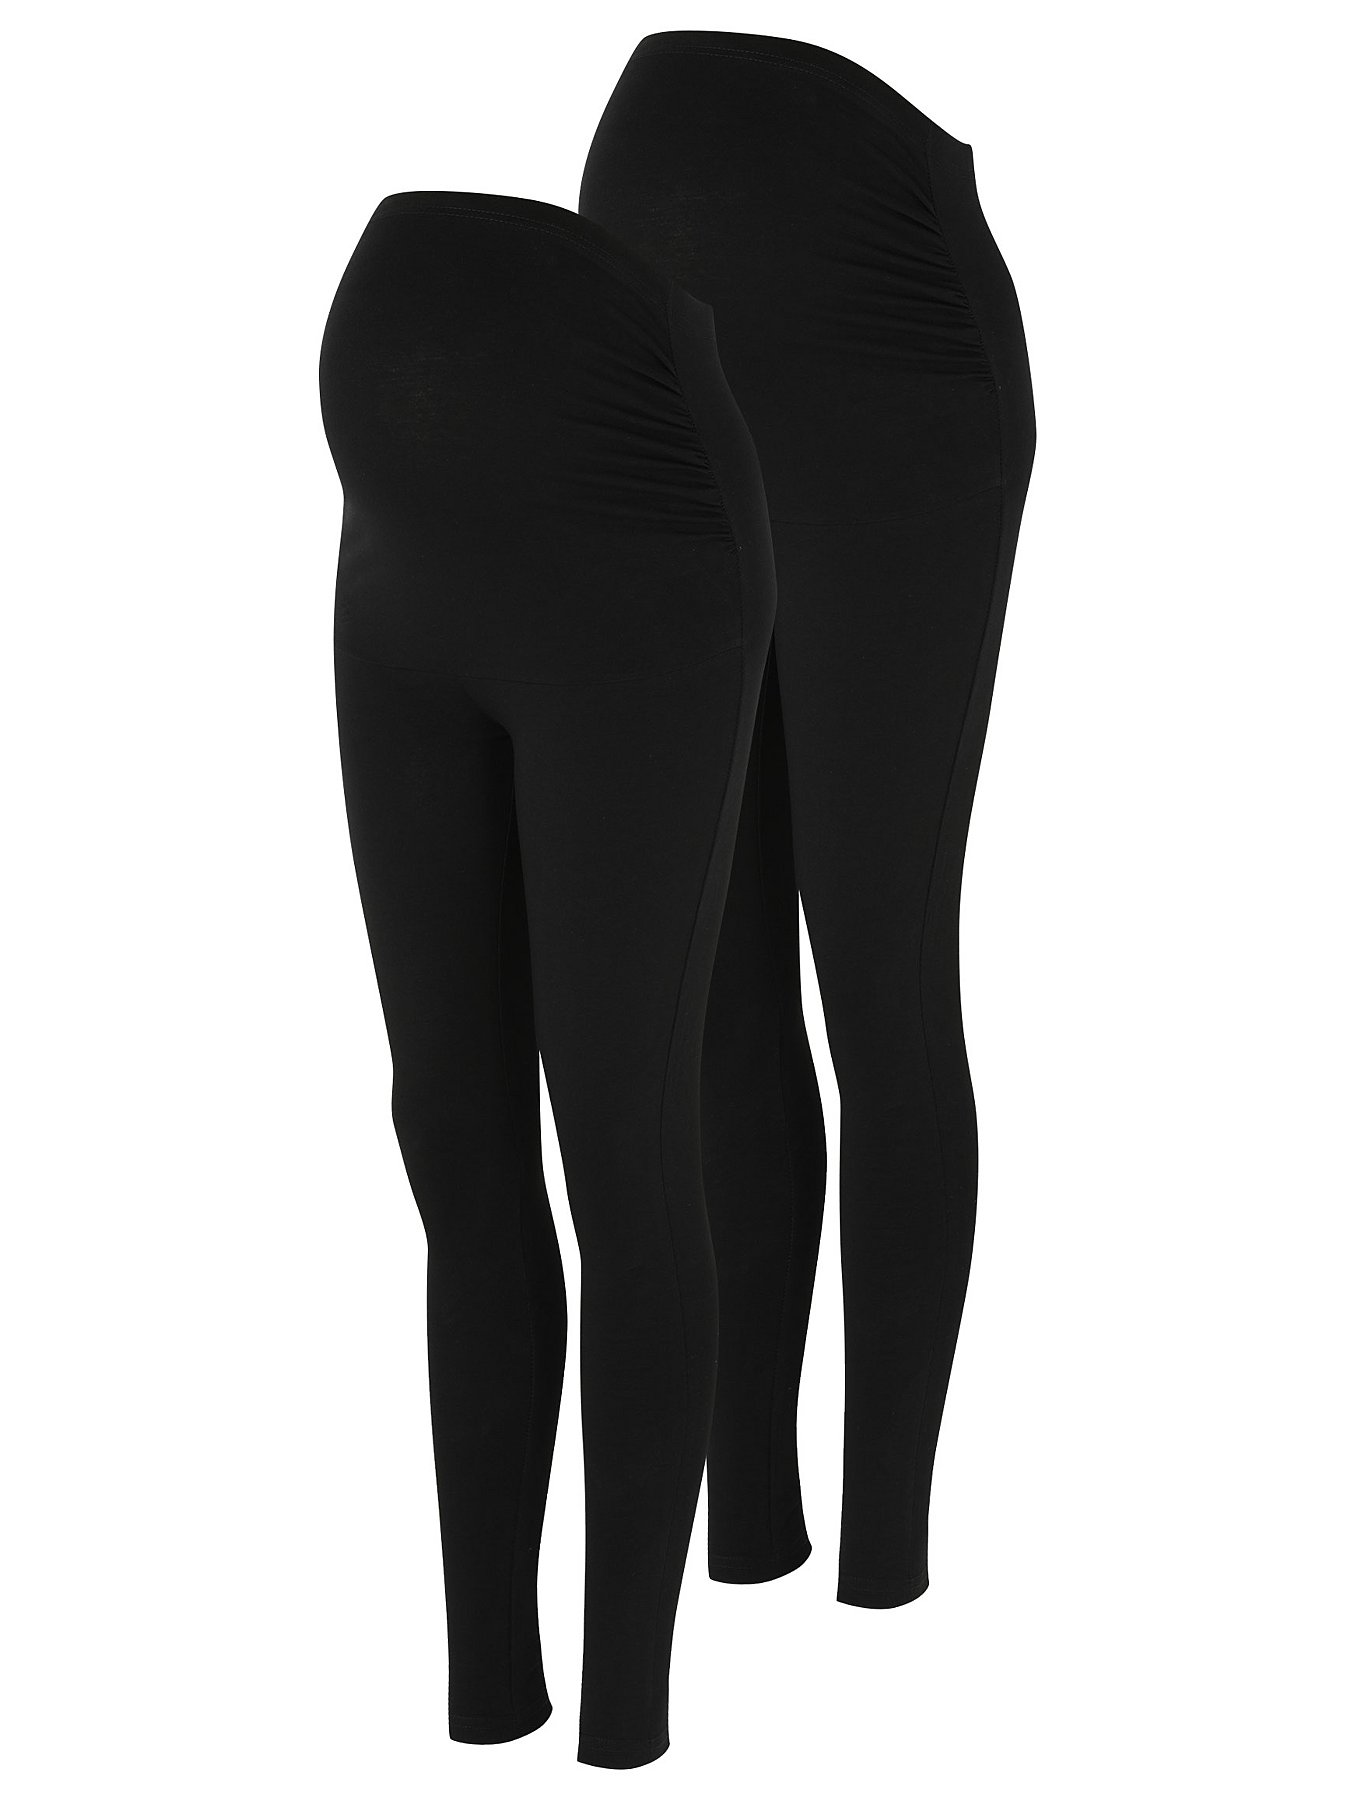 7a0fb76b3 Maternity Black Over Bump Leggings 2 Pack